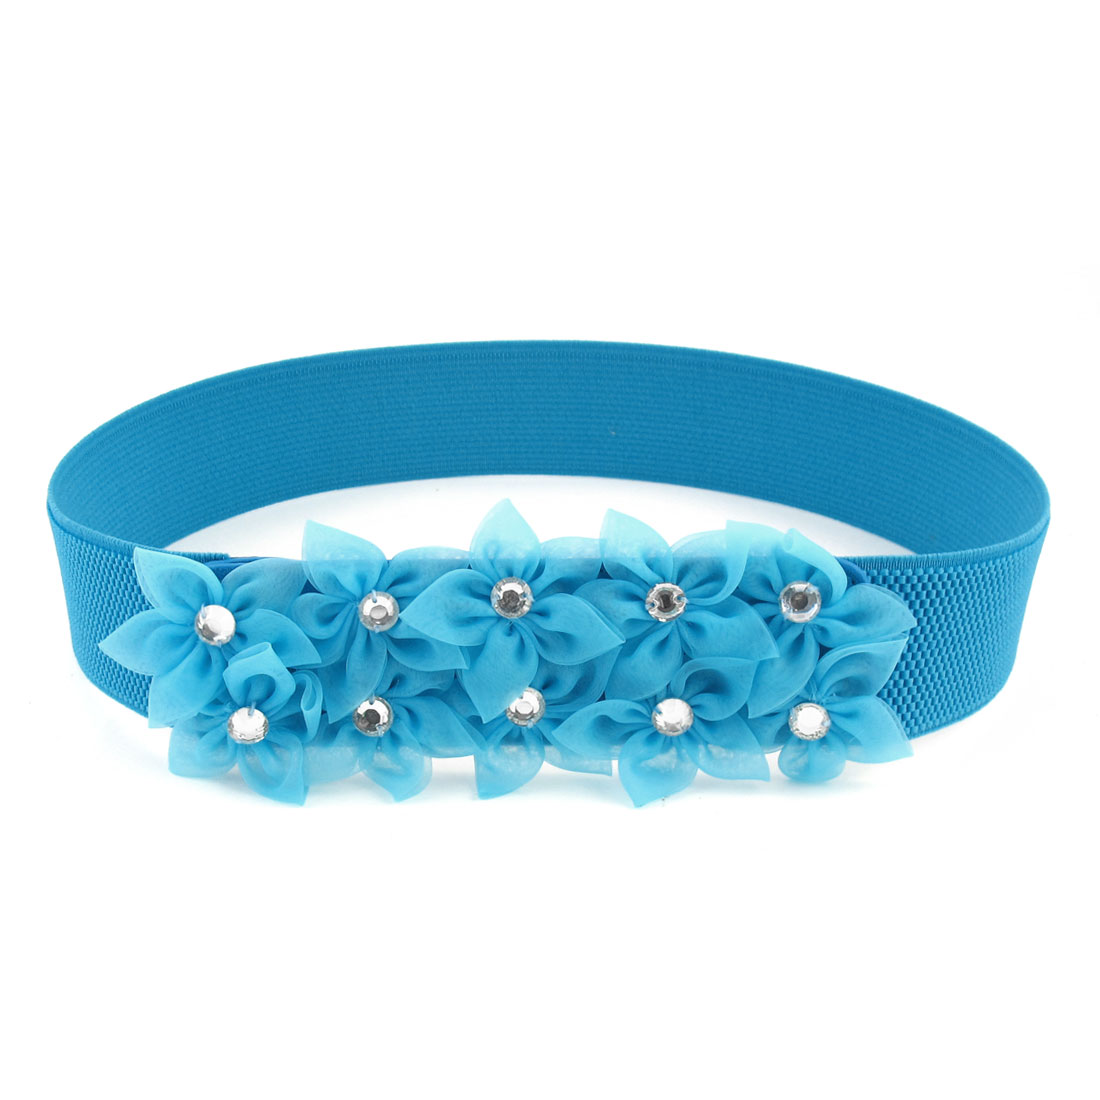 Blue Organza Flowers Decor Buckle Part 3.8cm Wide Stretchy Waist Belt for Women